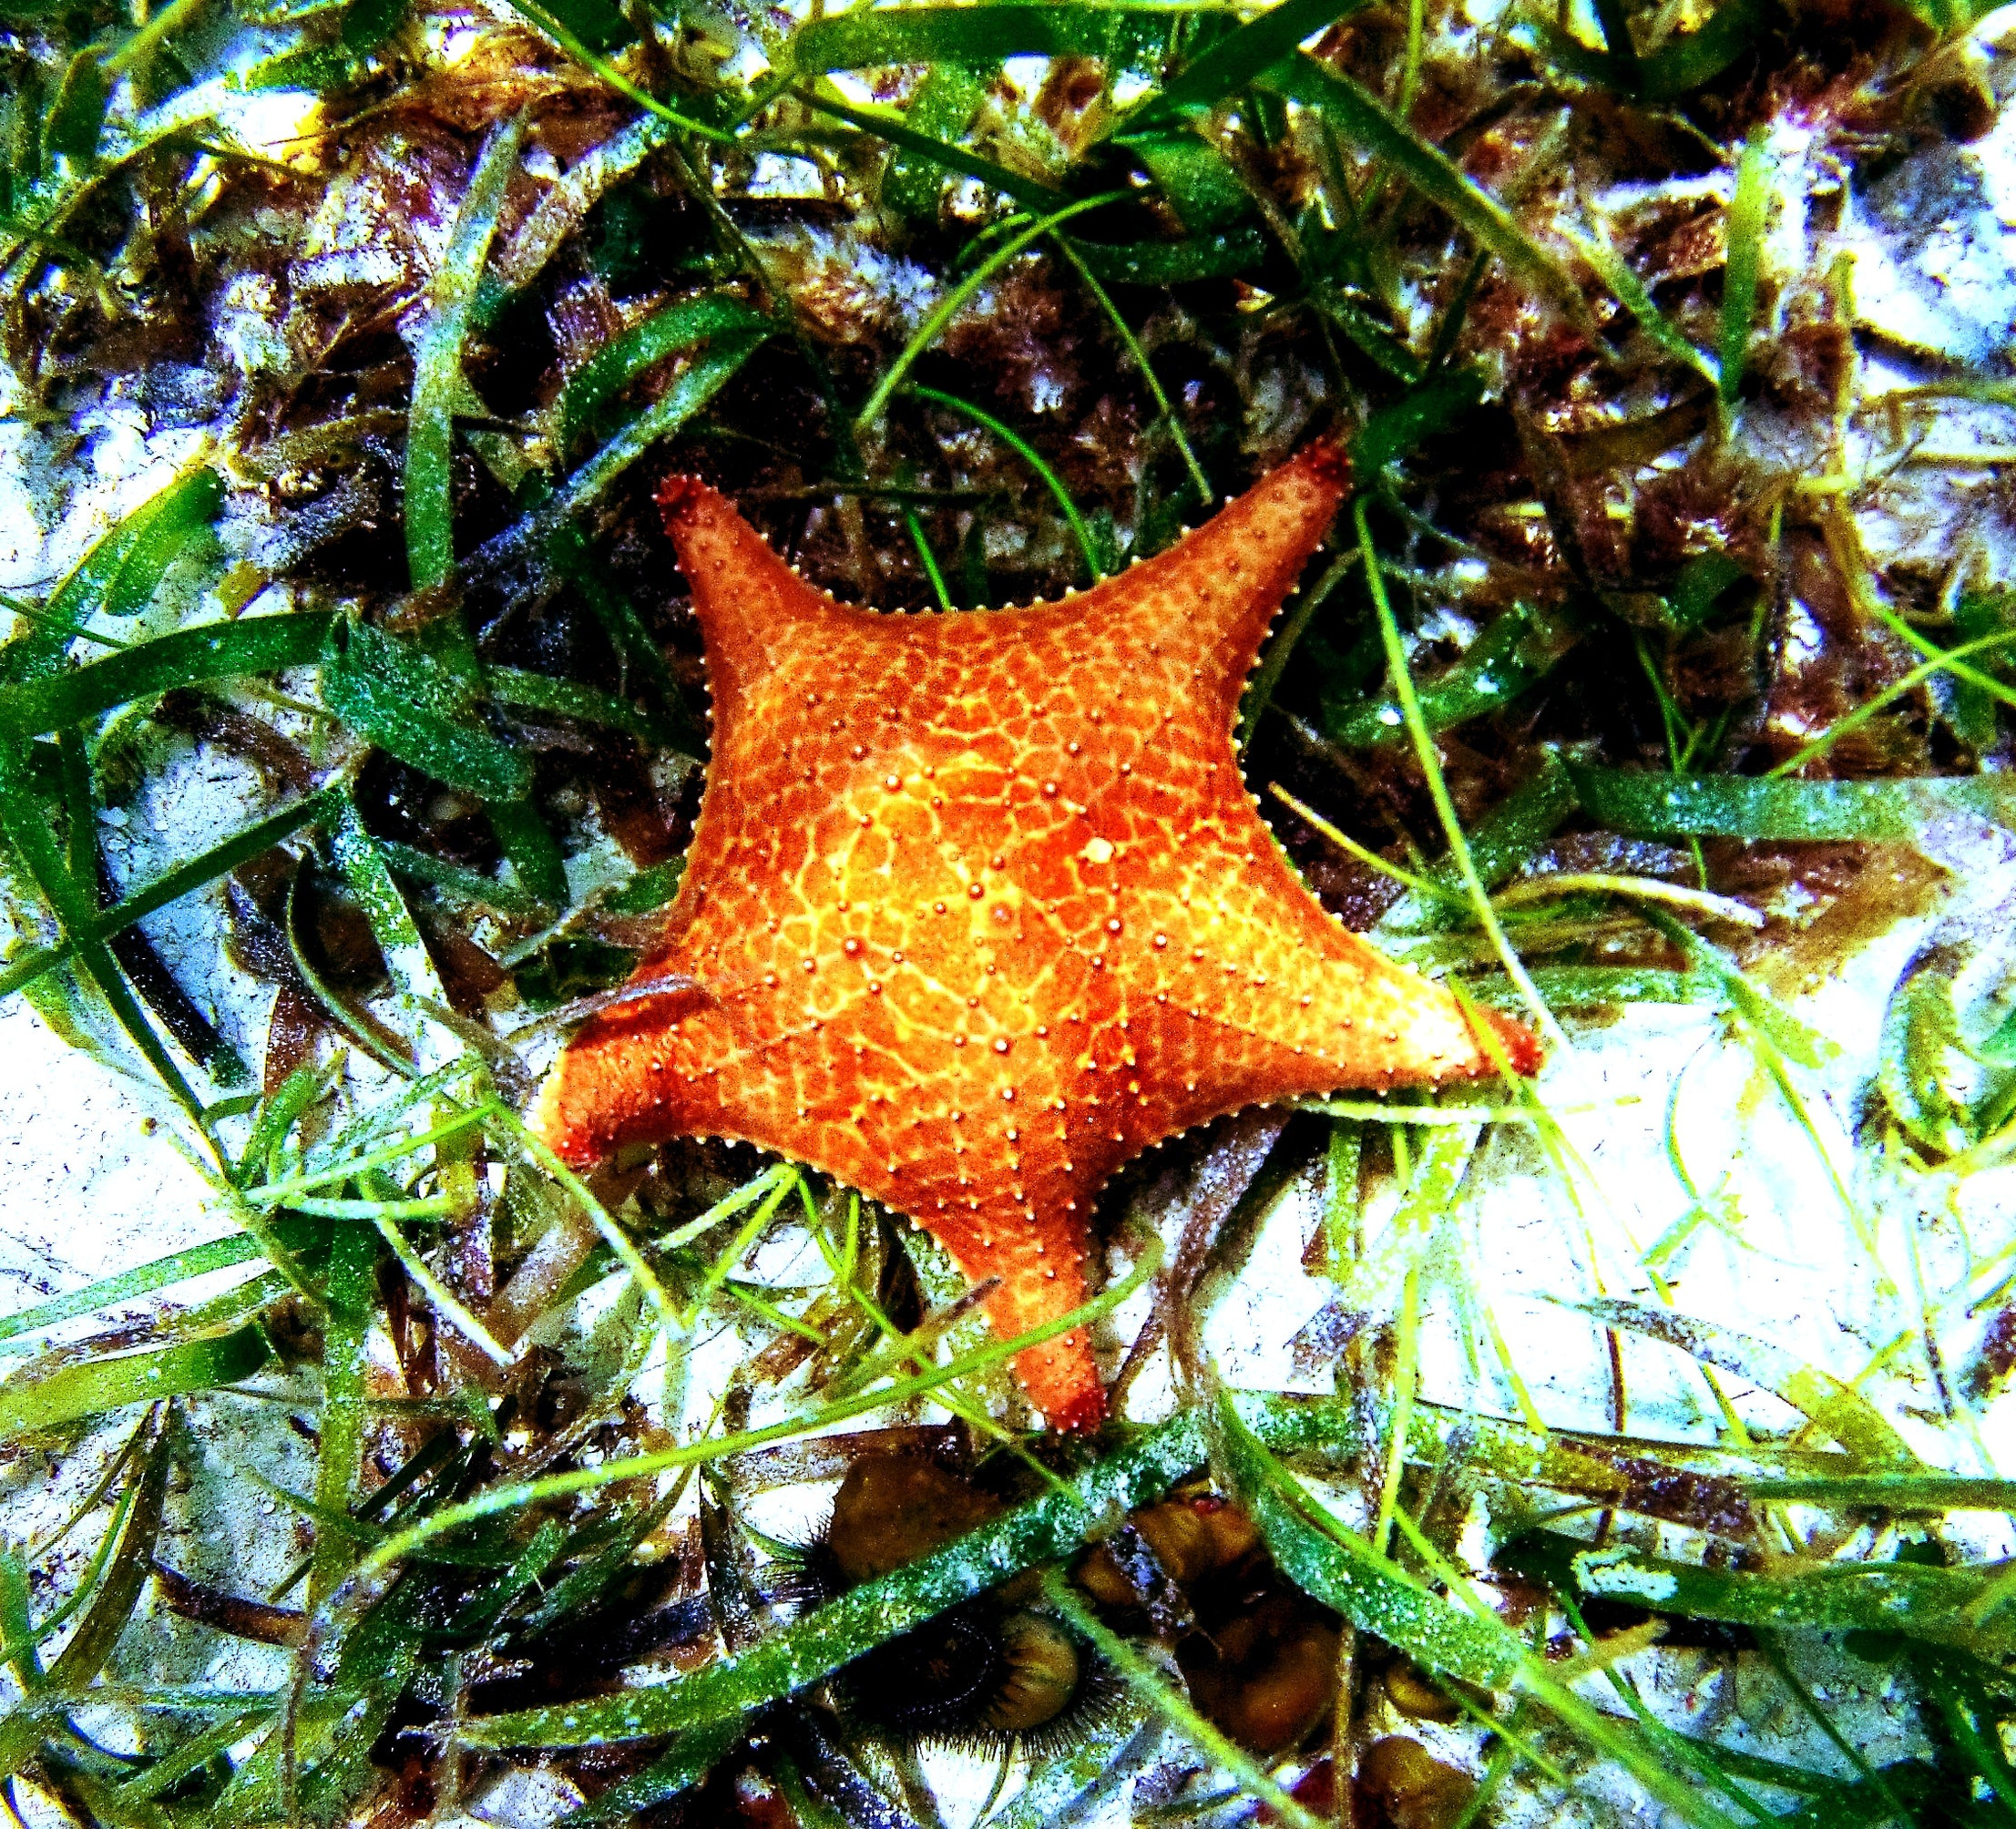 A cushion star ( Oreaster reticulatus ) amidst a seagrass bed.